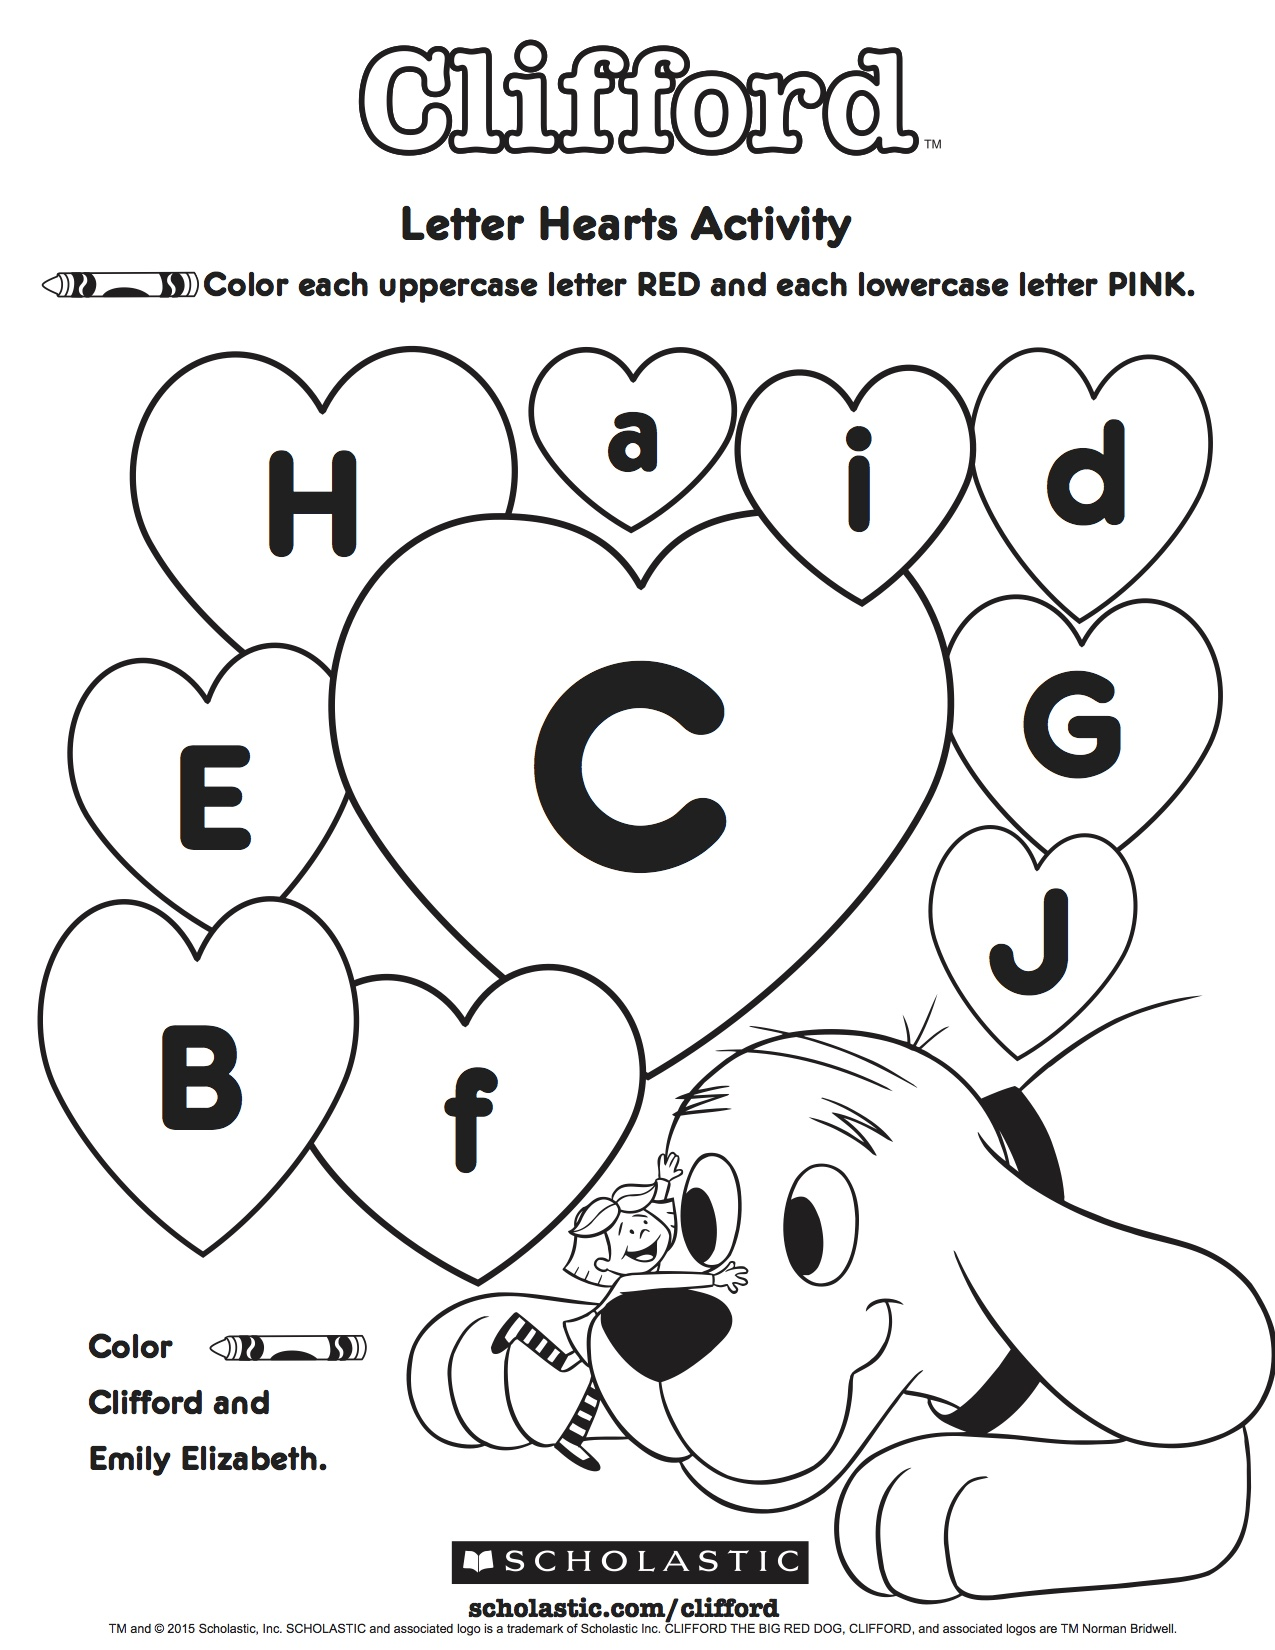 Clifford S Letter Hearts Activity